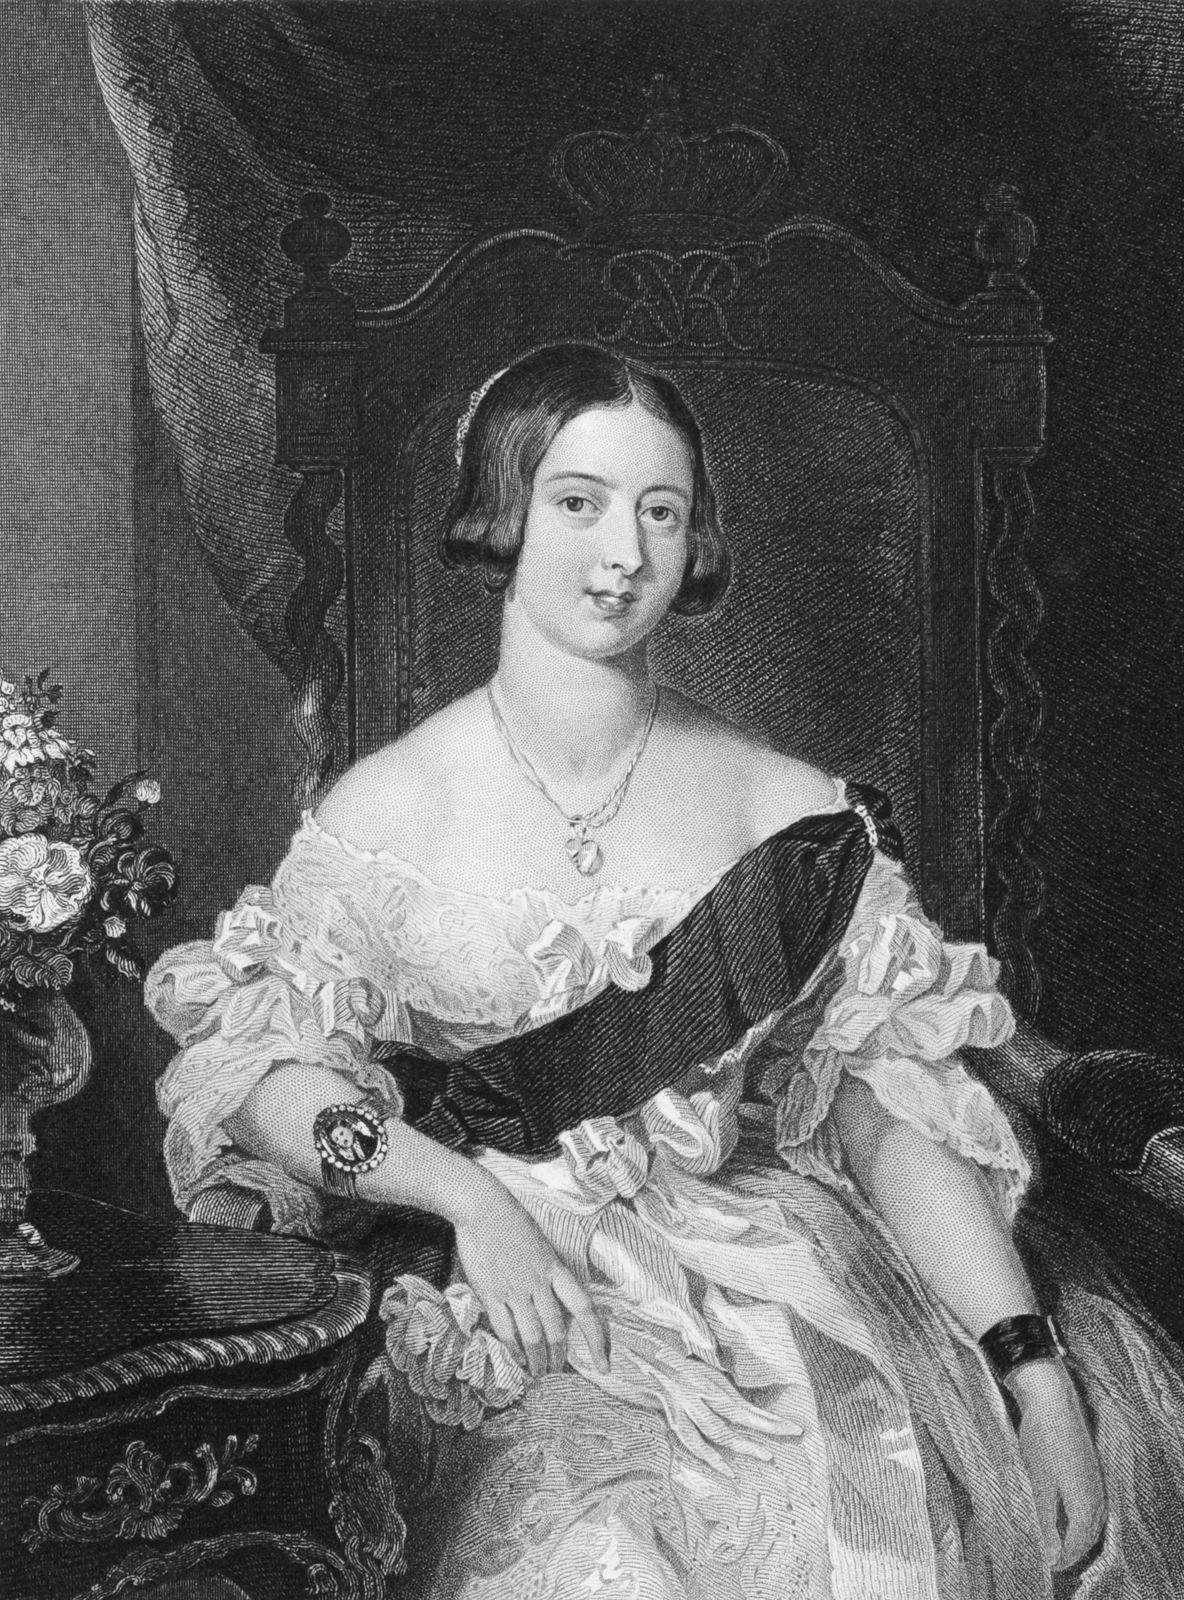 The Tradition of Afternoon Tea and Queen Victoria